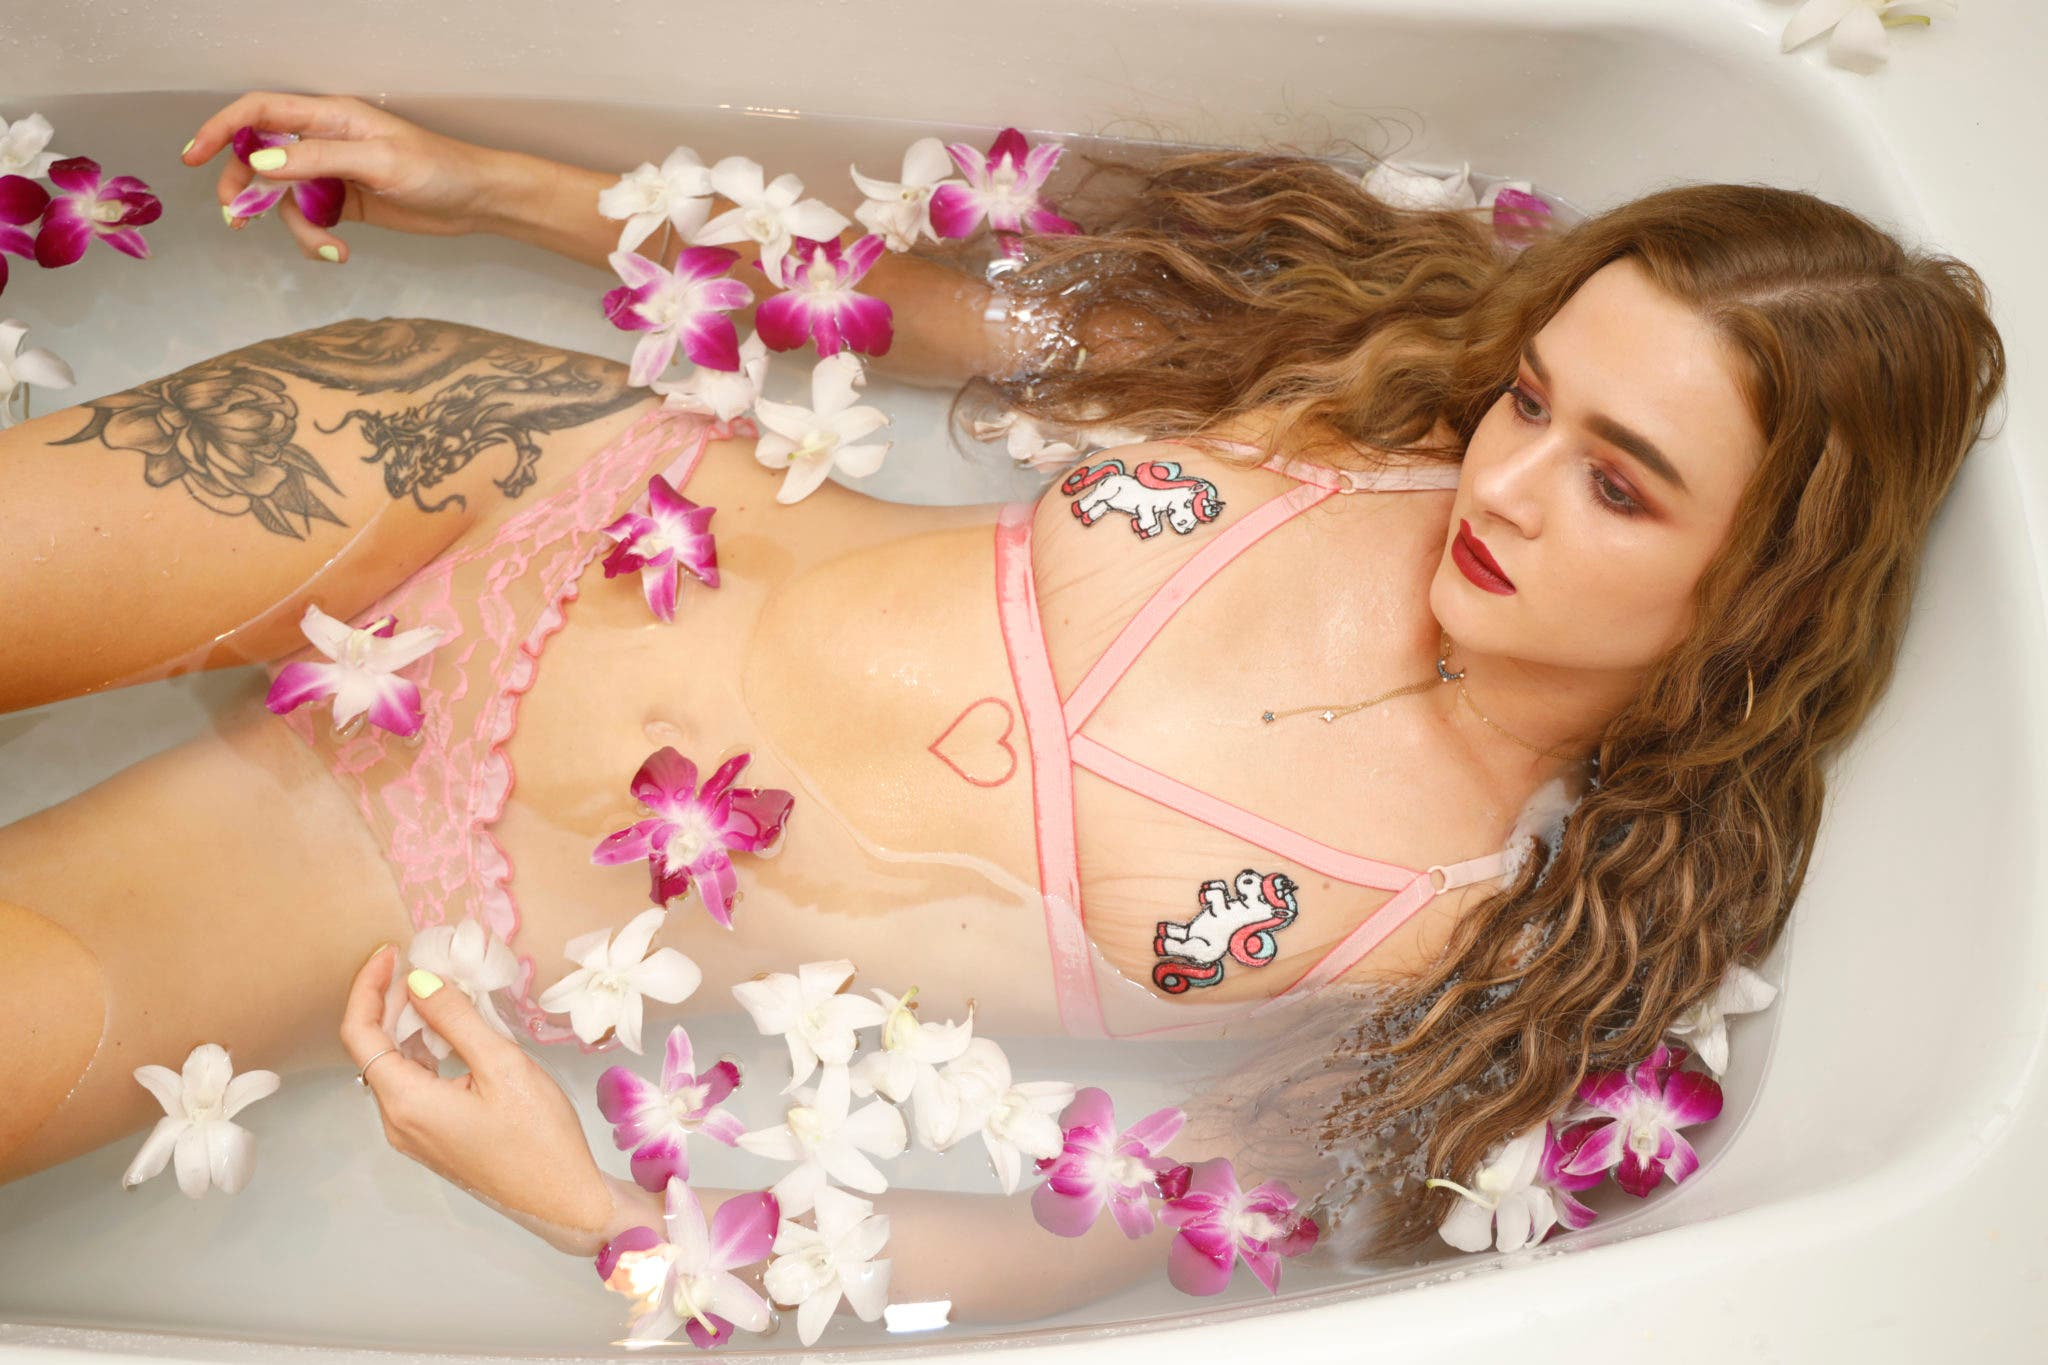 The Approach How To Do Bath Tub Shoots With Models Nsfw